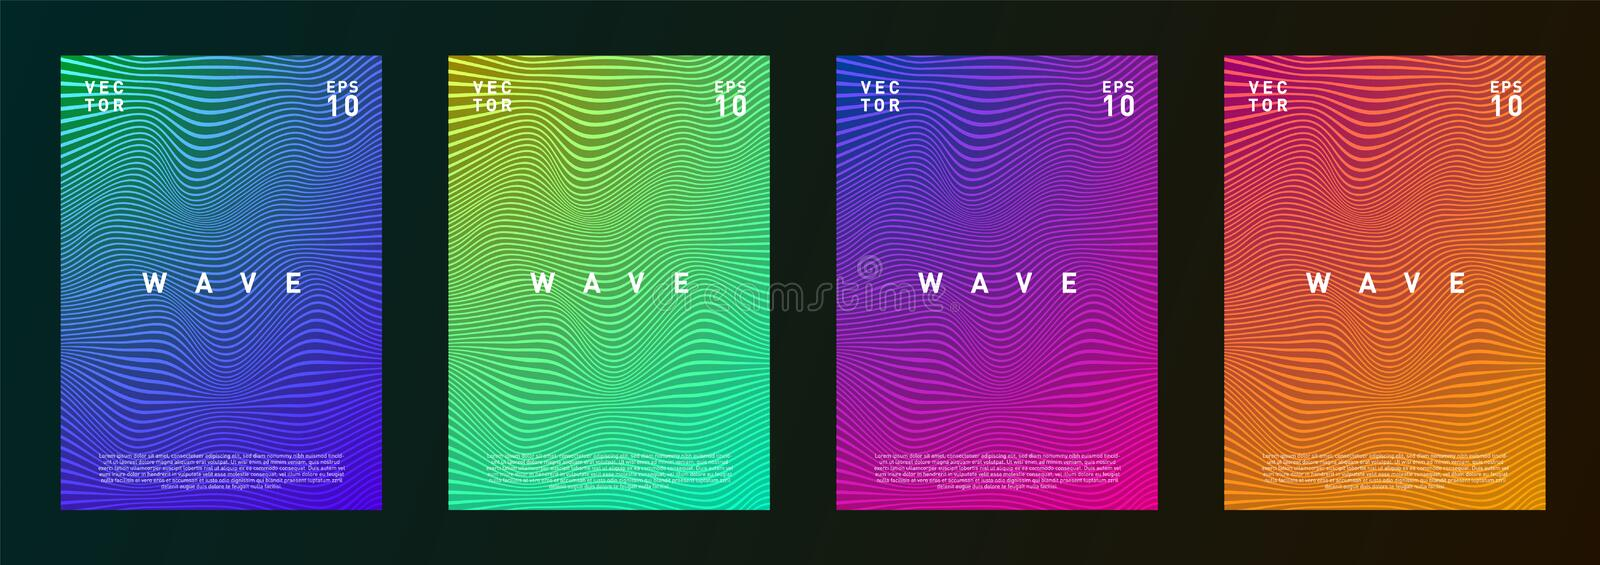 Set of wave lines gradient texture fluid background design for journal, flyer, poster, brochure, covers in trendy pink royalty free illustration